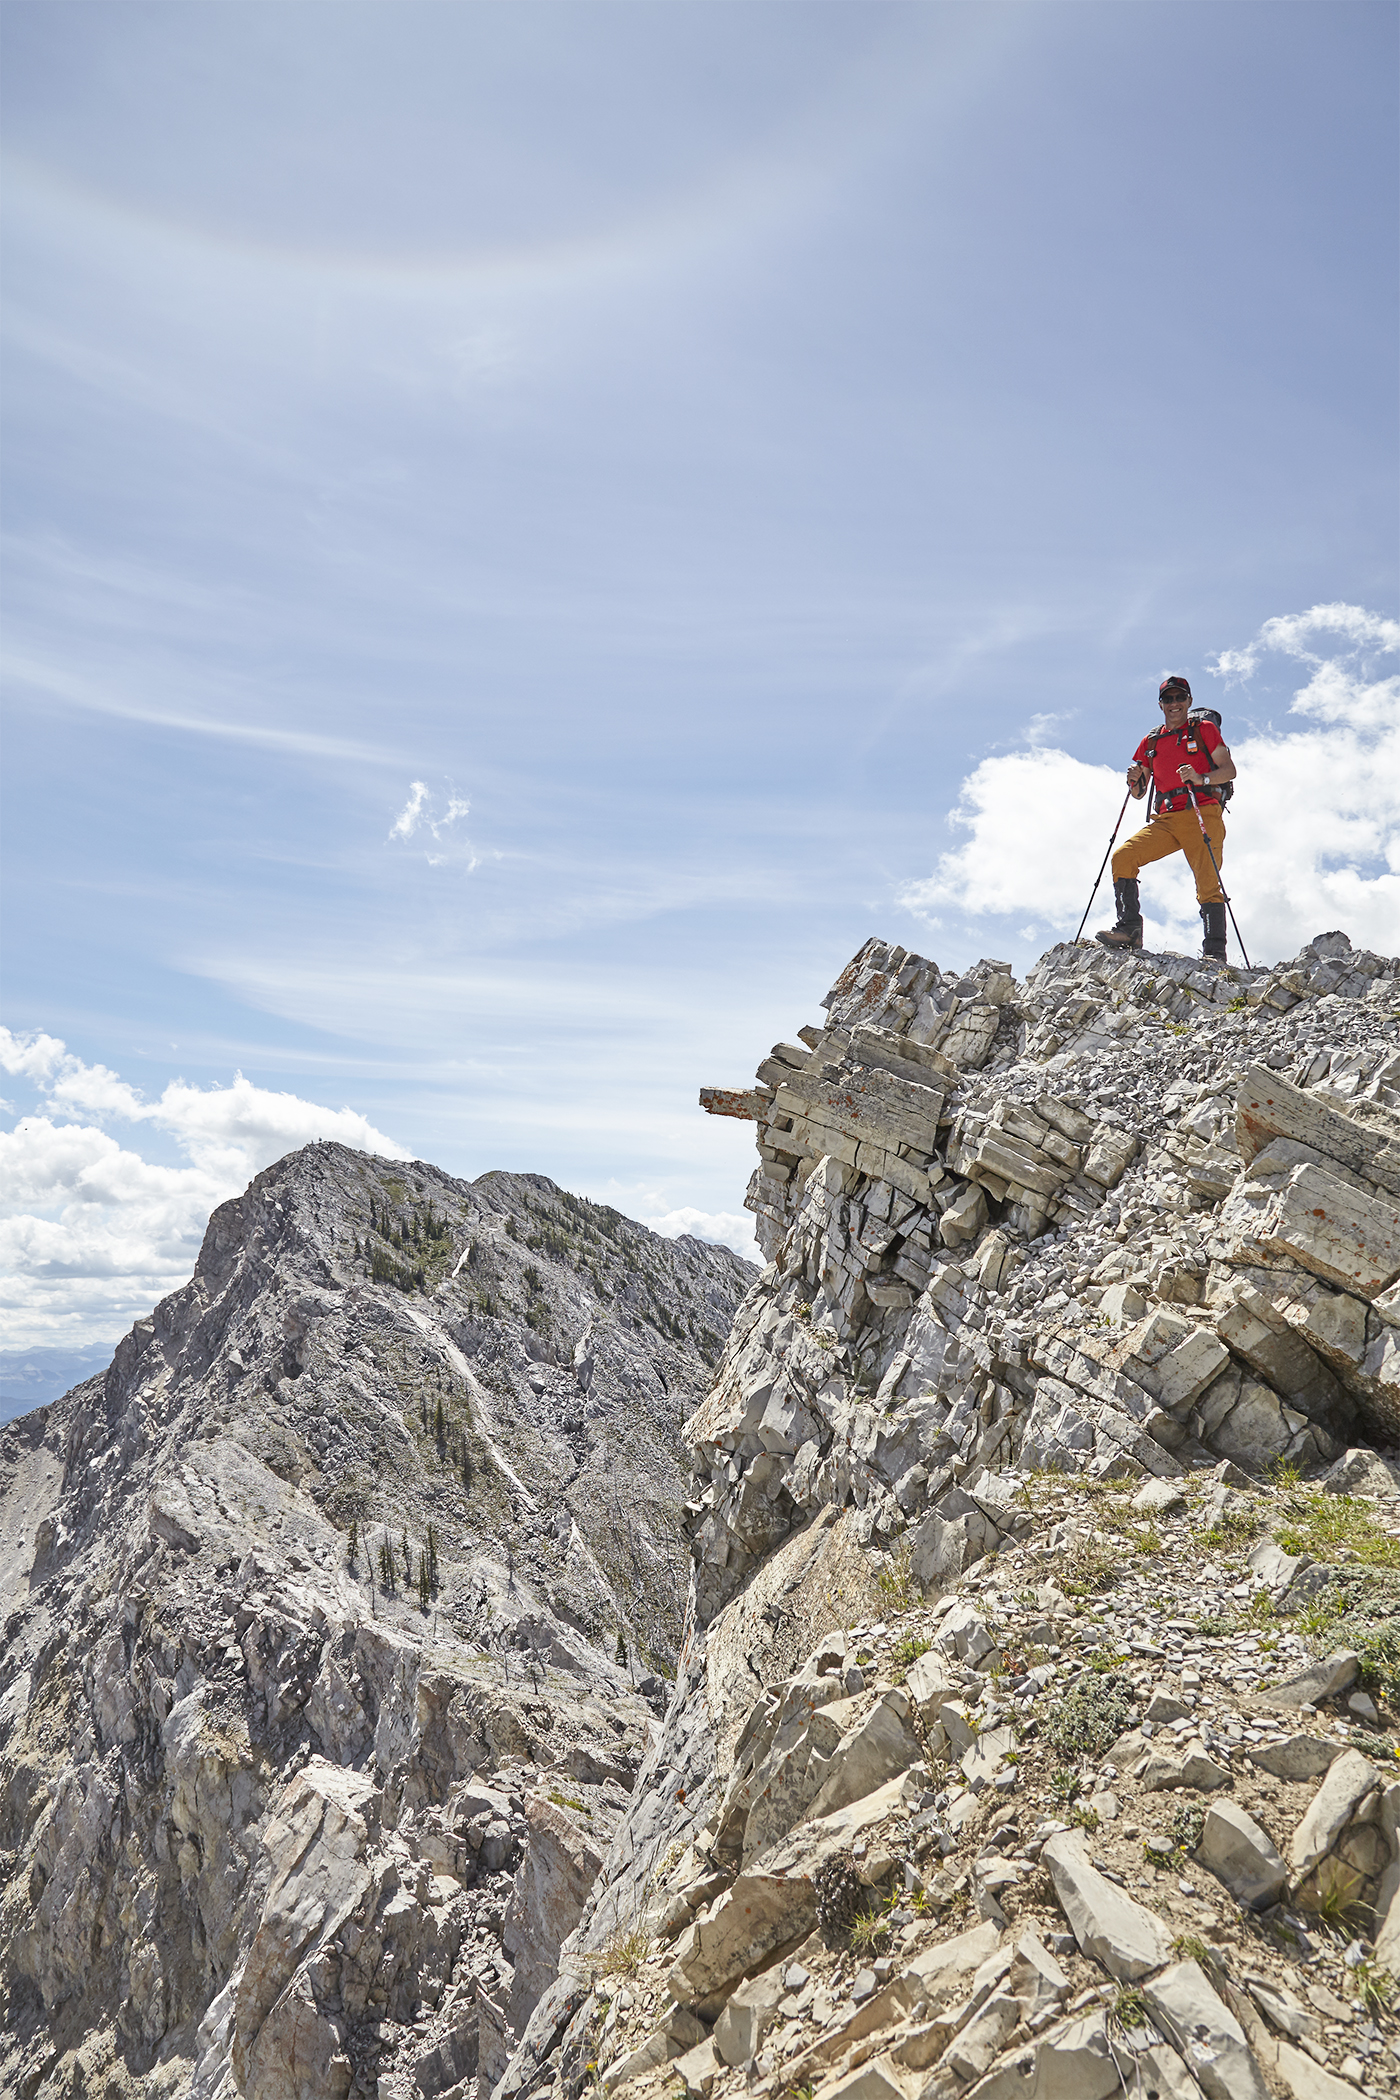 Me on the summit. The peak beyond is Turtle Mountain South, the true summit.